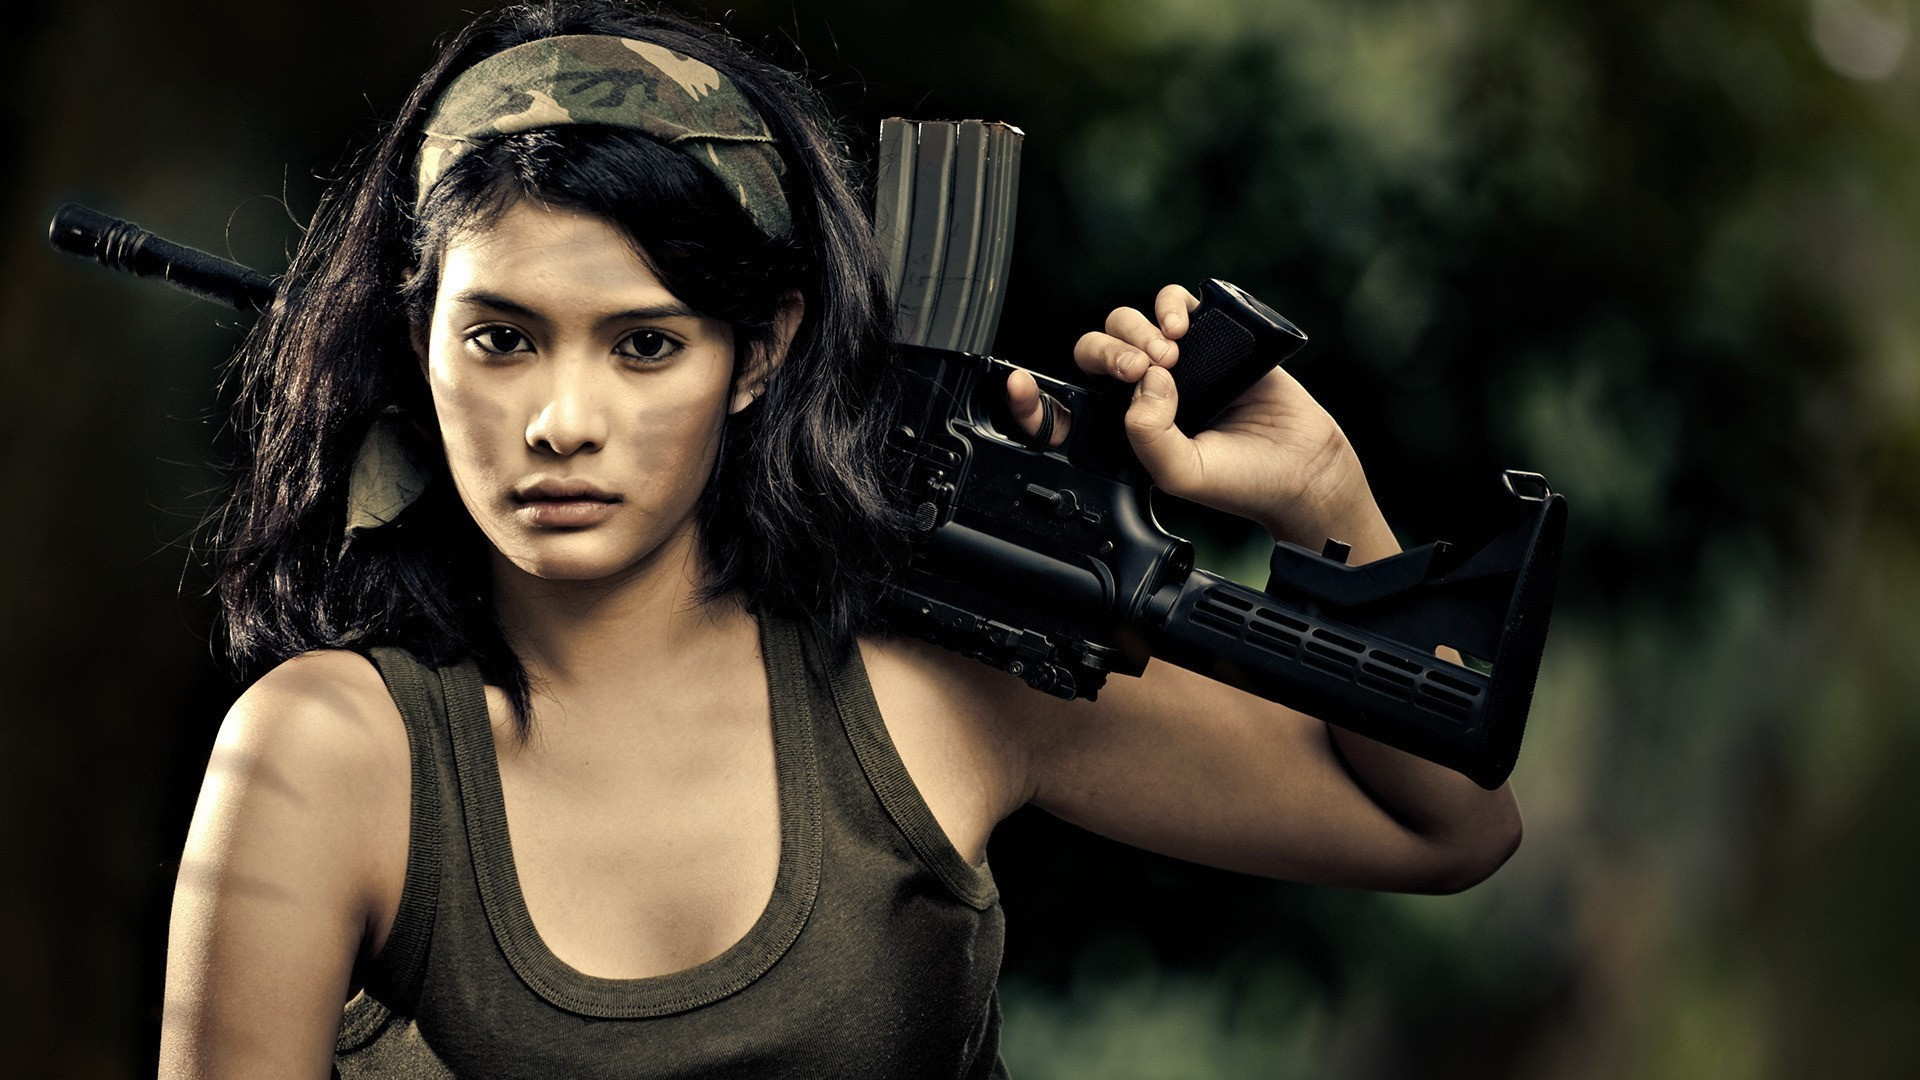 Army Girl with Gun HD Wallpapers   New HD Wallpapers 1920x1080